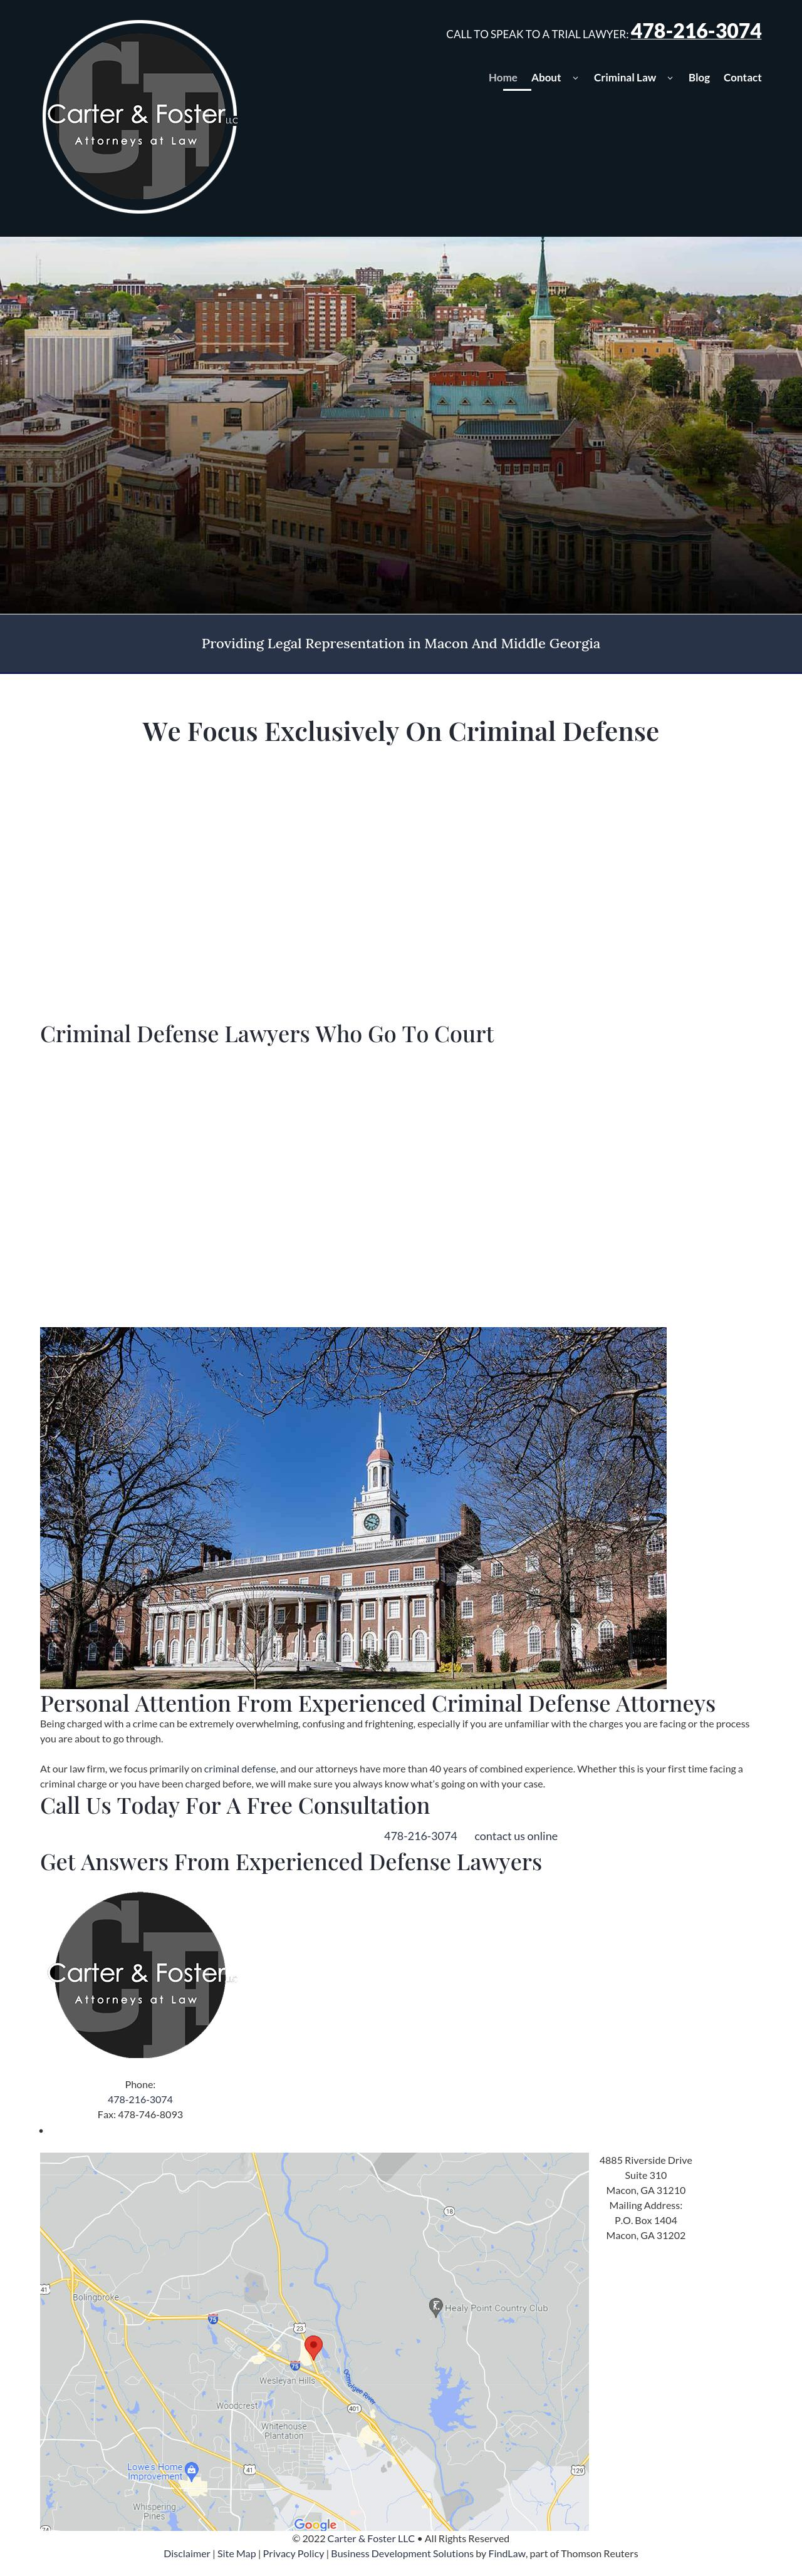 Carter & Foster LLC - Macon GA Lawyers